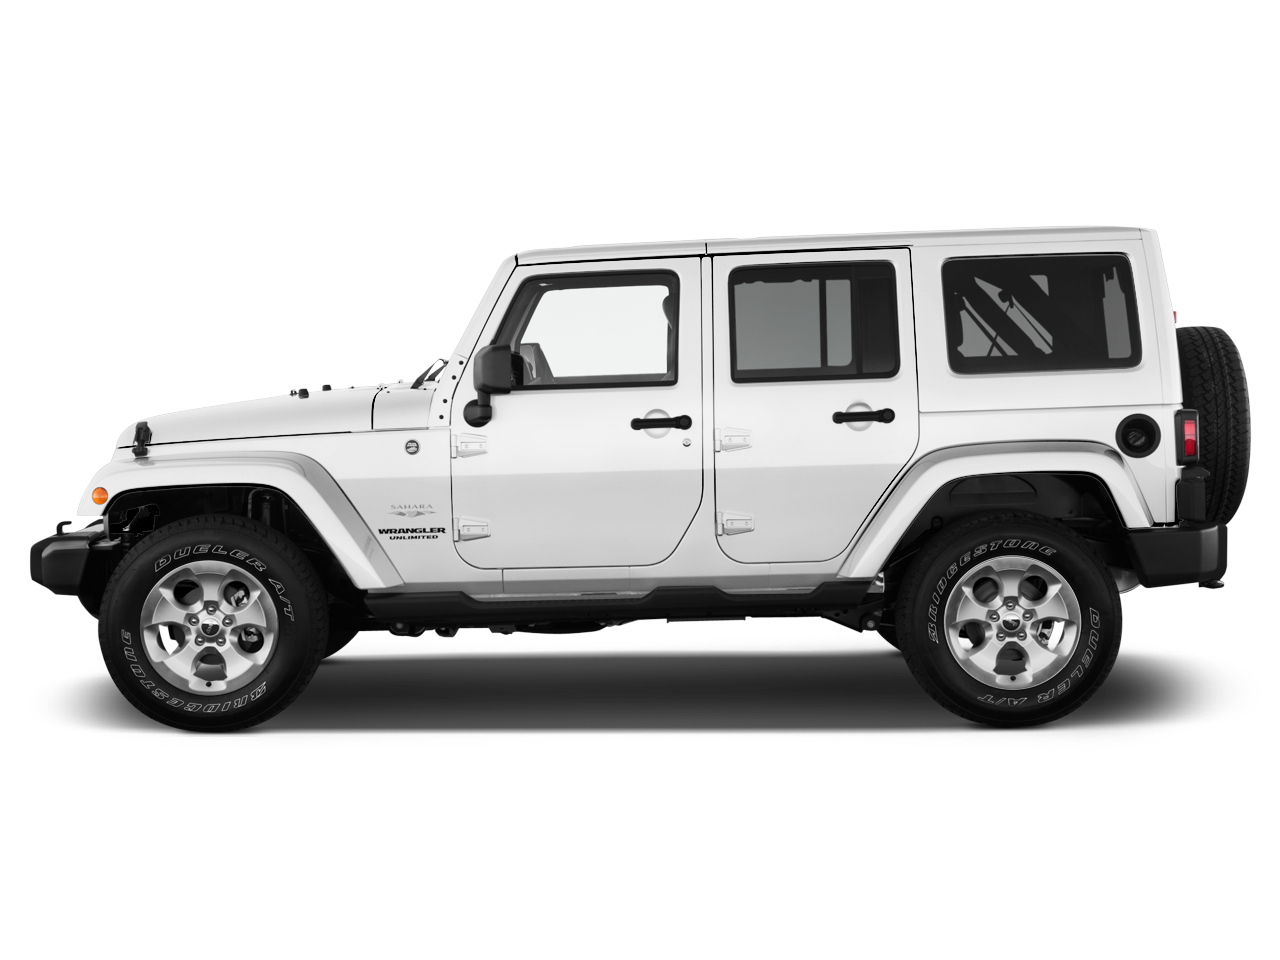 Used Jeep Wrangler Or Unlimited With Keyword Sherman For Coolant Flush Sale In Skokie Il Dodge Chrysler Ram